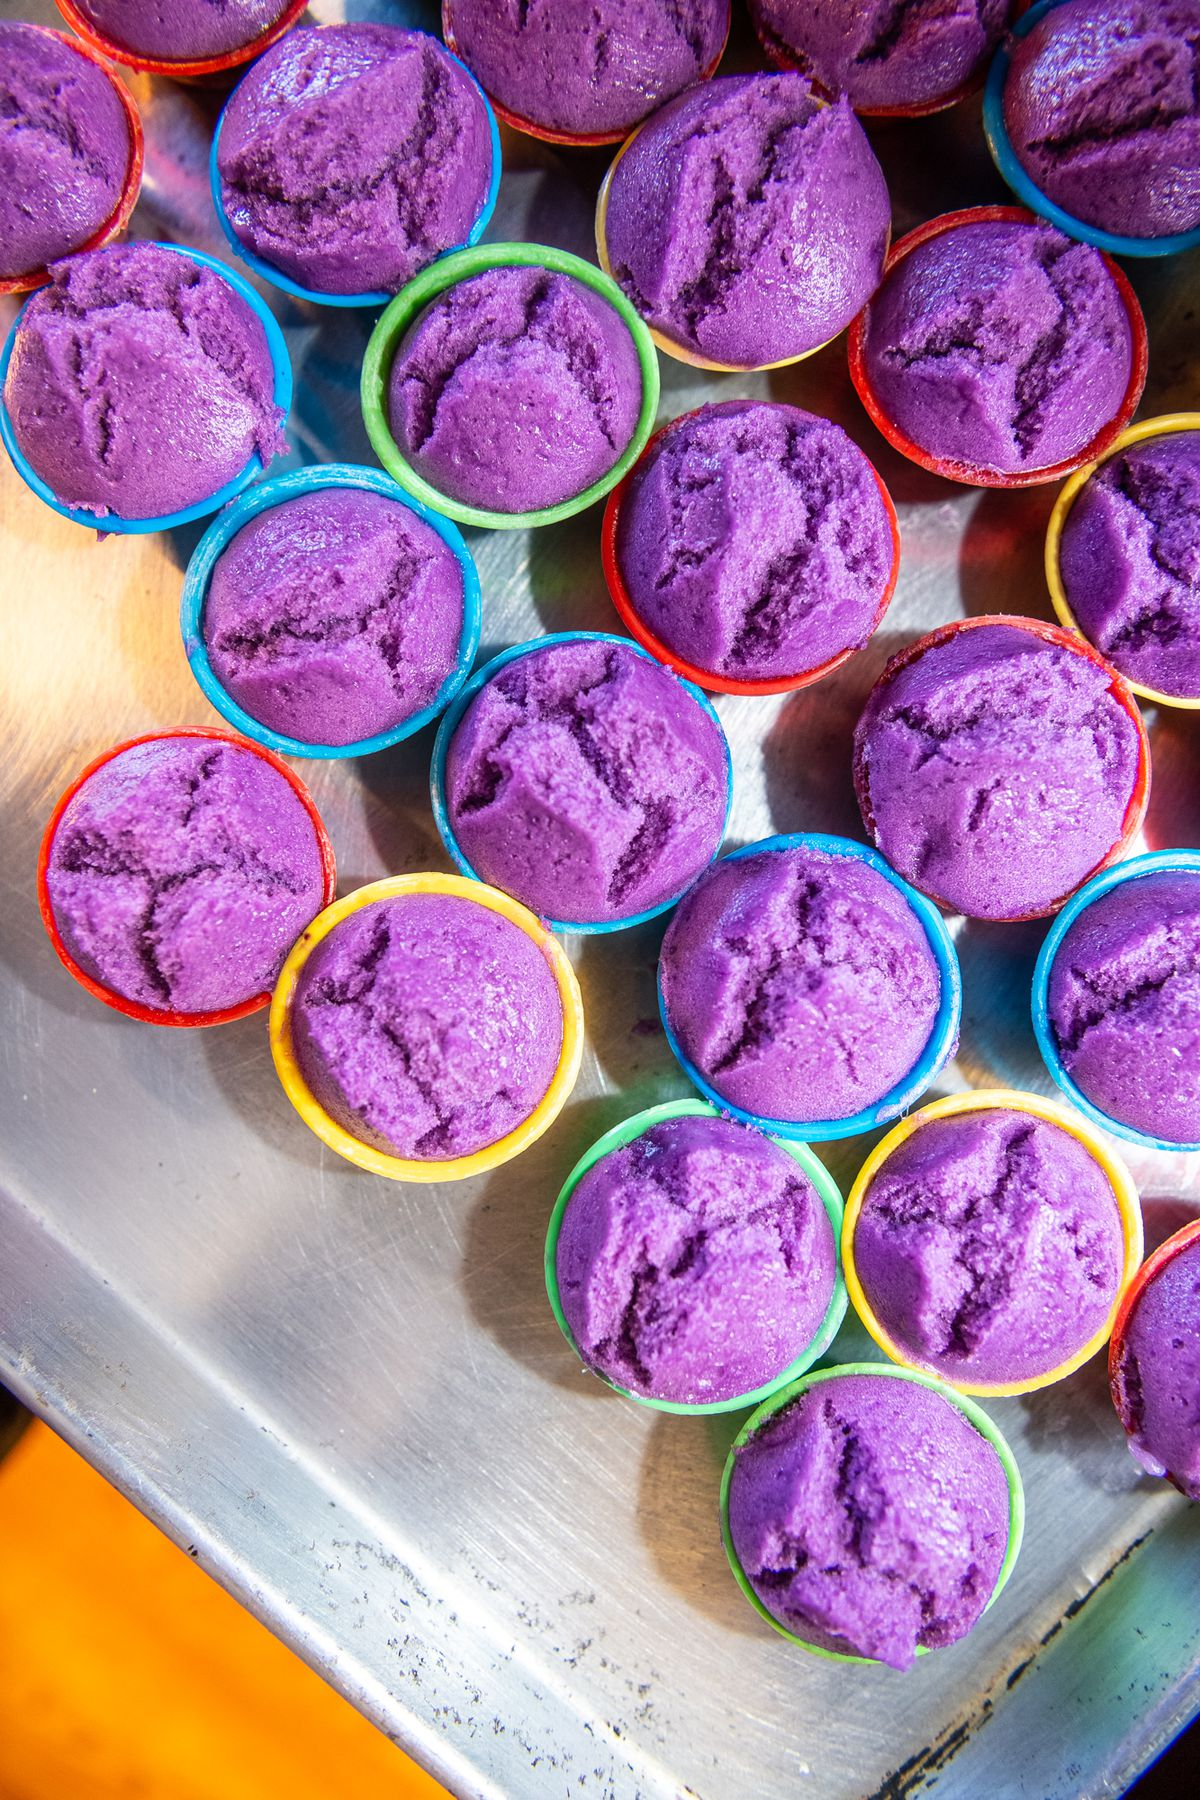 Muffin-shaped puto, sweet steamed rice cakes, show off a deep purple color from ube, a variety of yam.